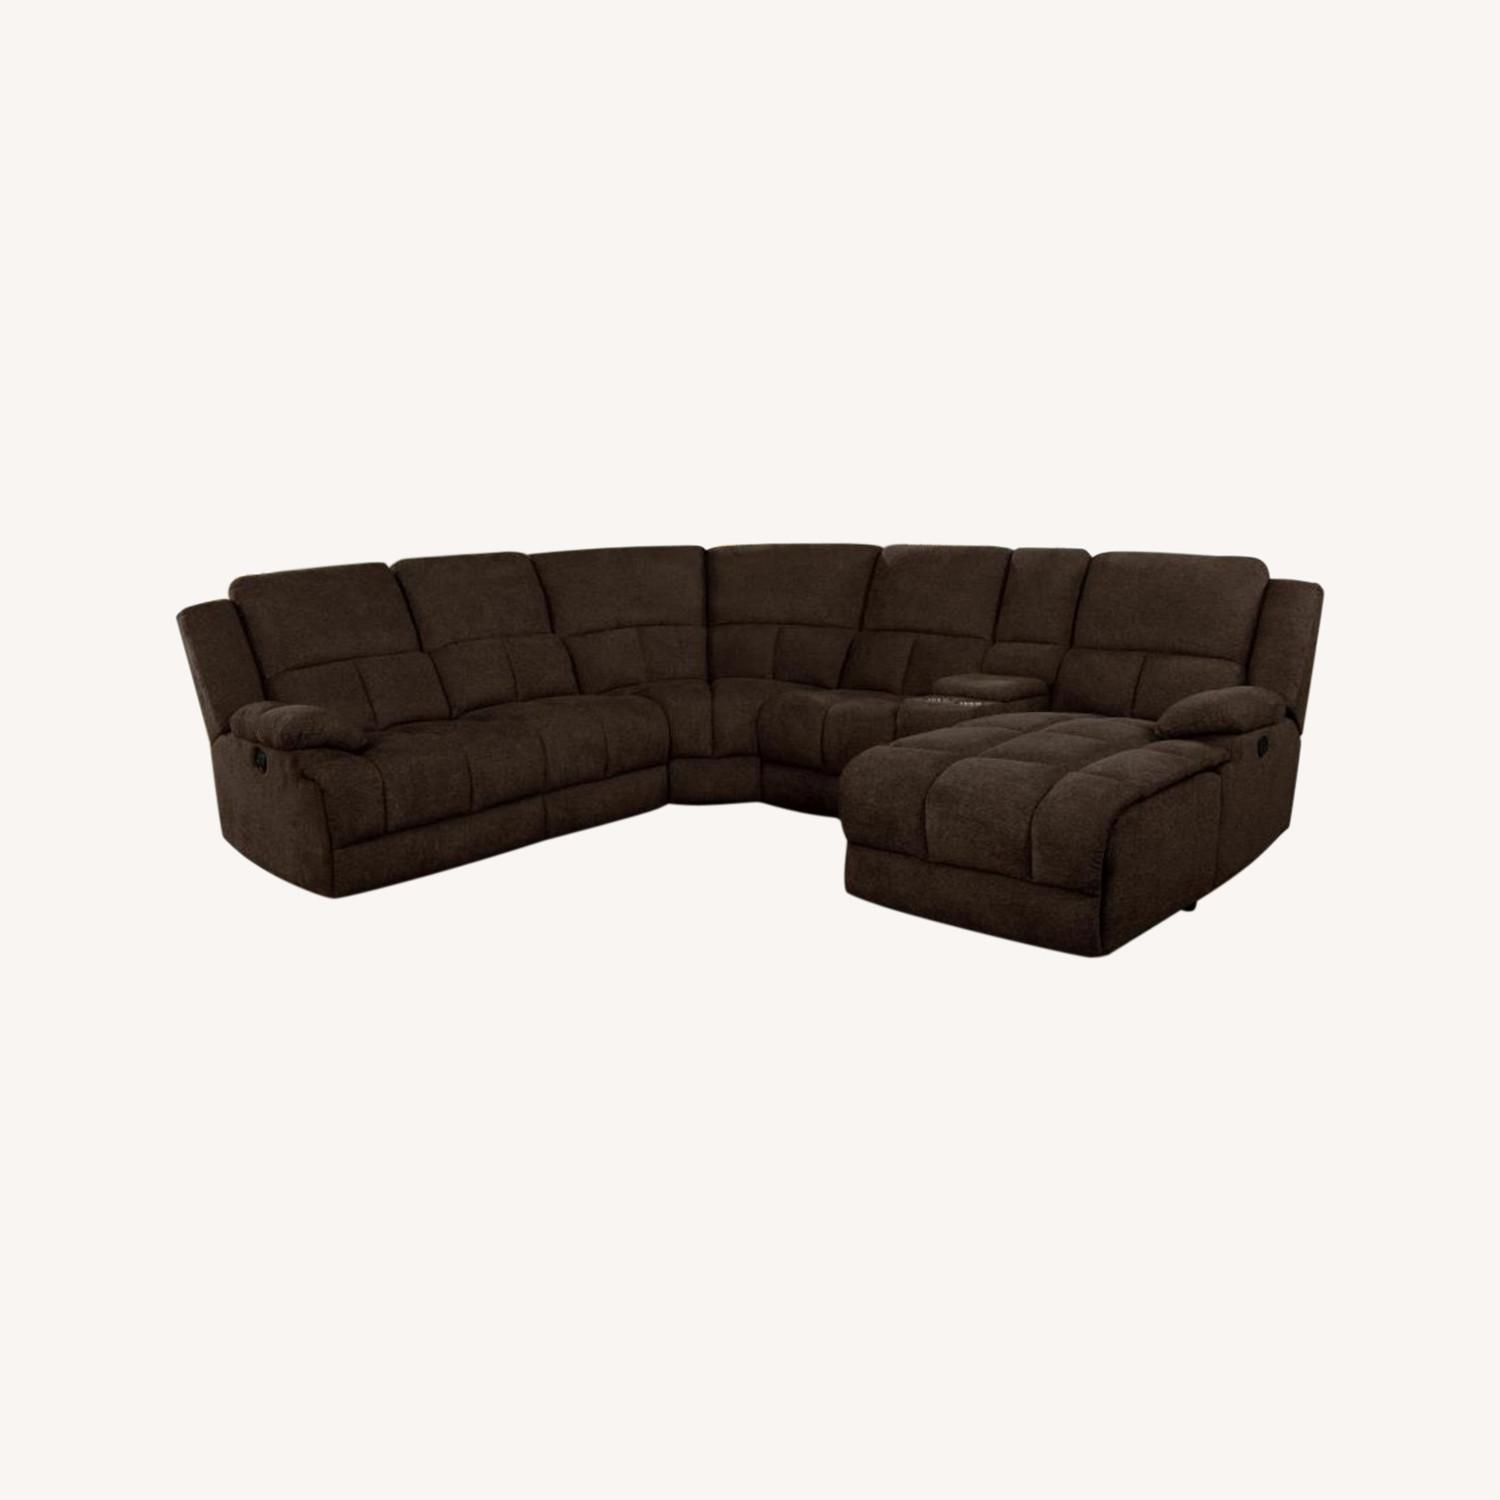 Motion Sectional In Brown Performance Fabric - image-17